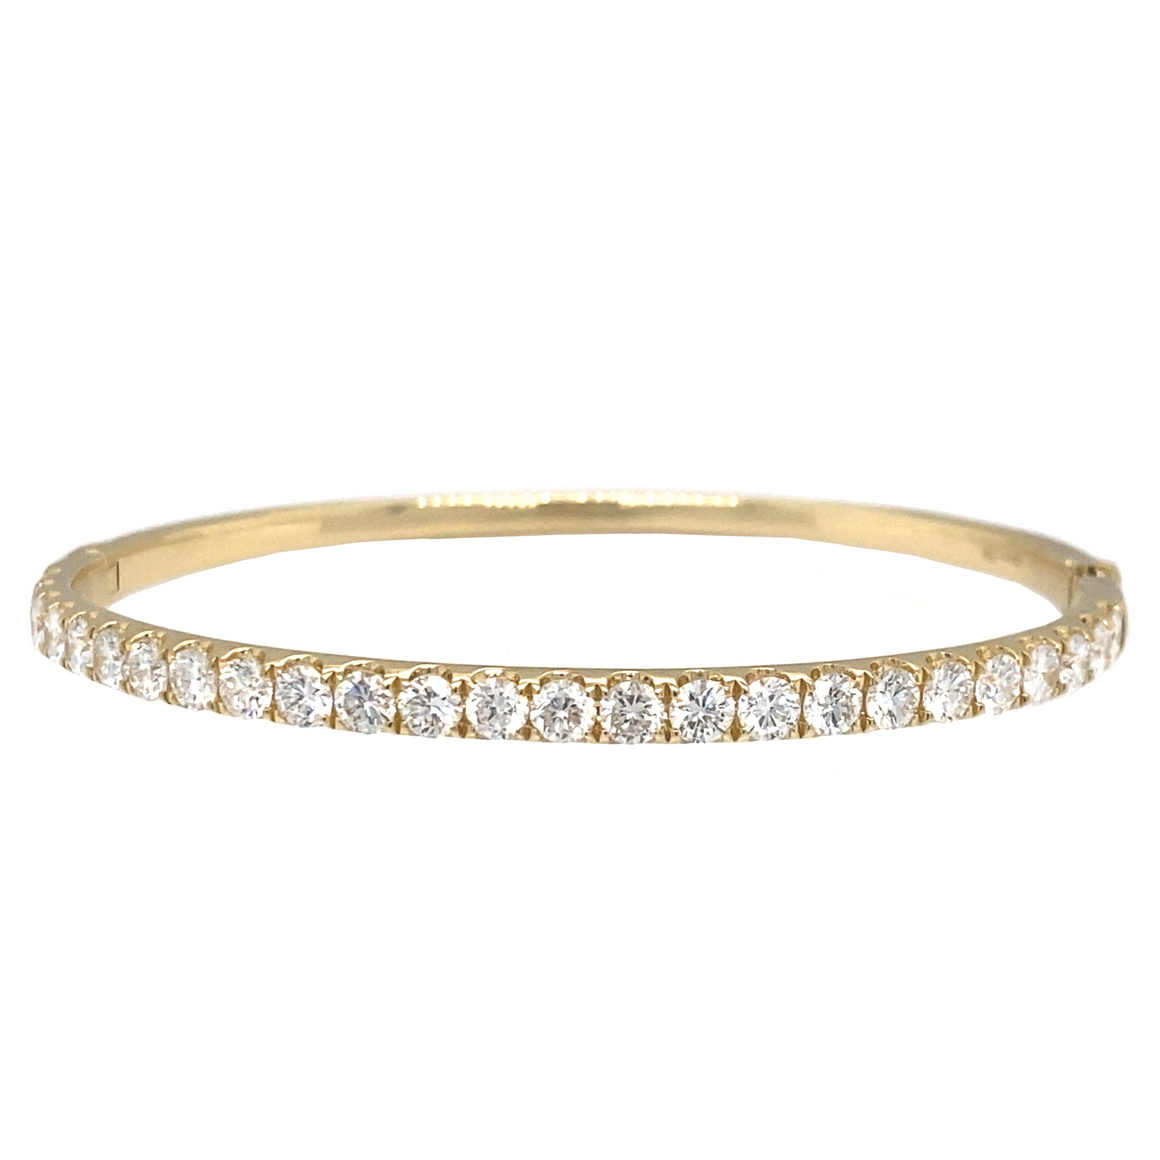 Yellow Gold Oval Hinge Bangle - Lesley Ann Jewels